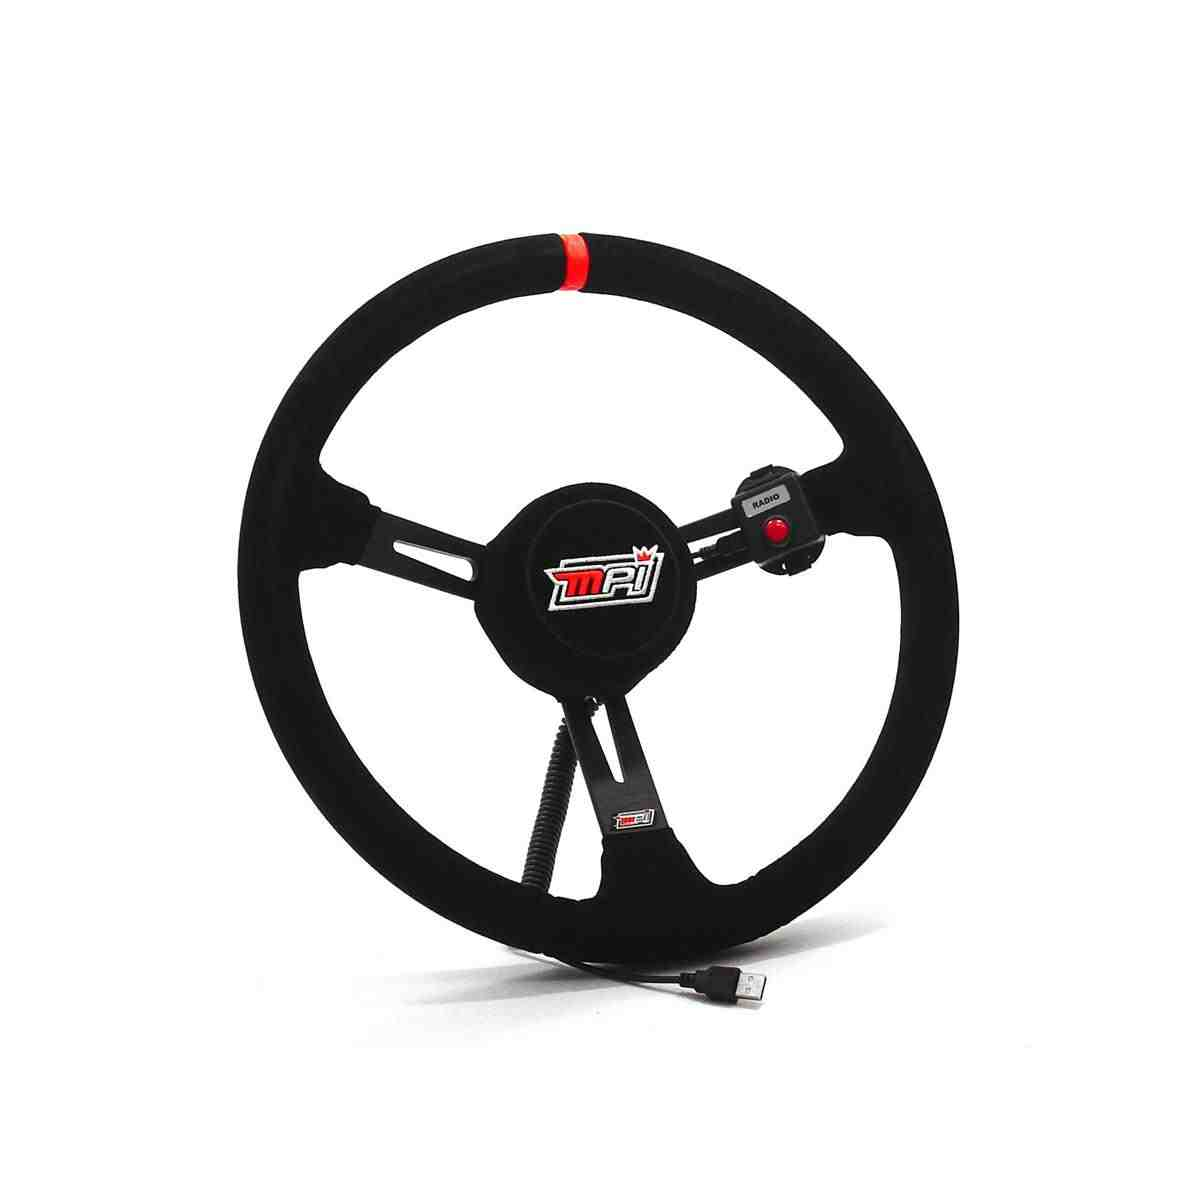 Max Papis 15-inch Oval Track Suede Wheel Kit with Direct-Drive Mounting Adapter